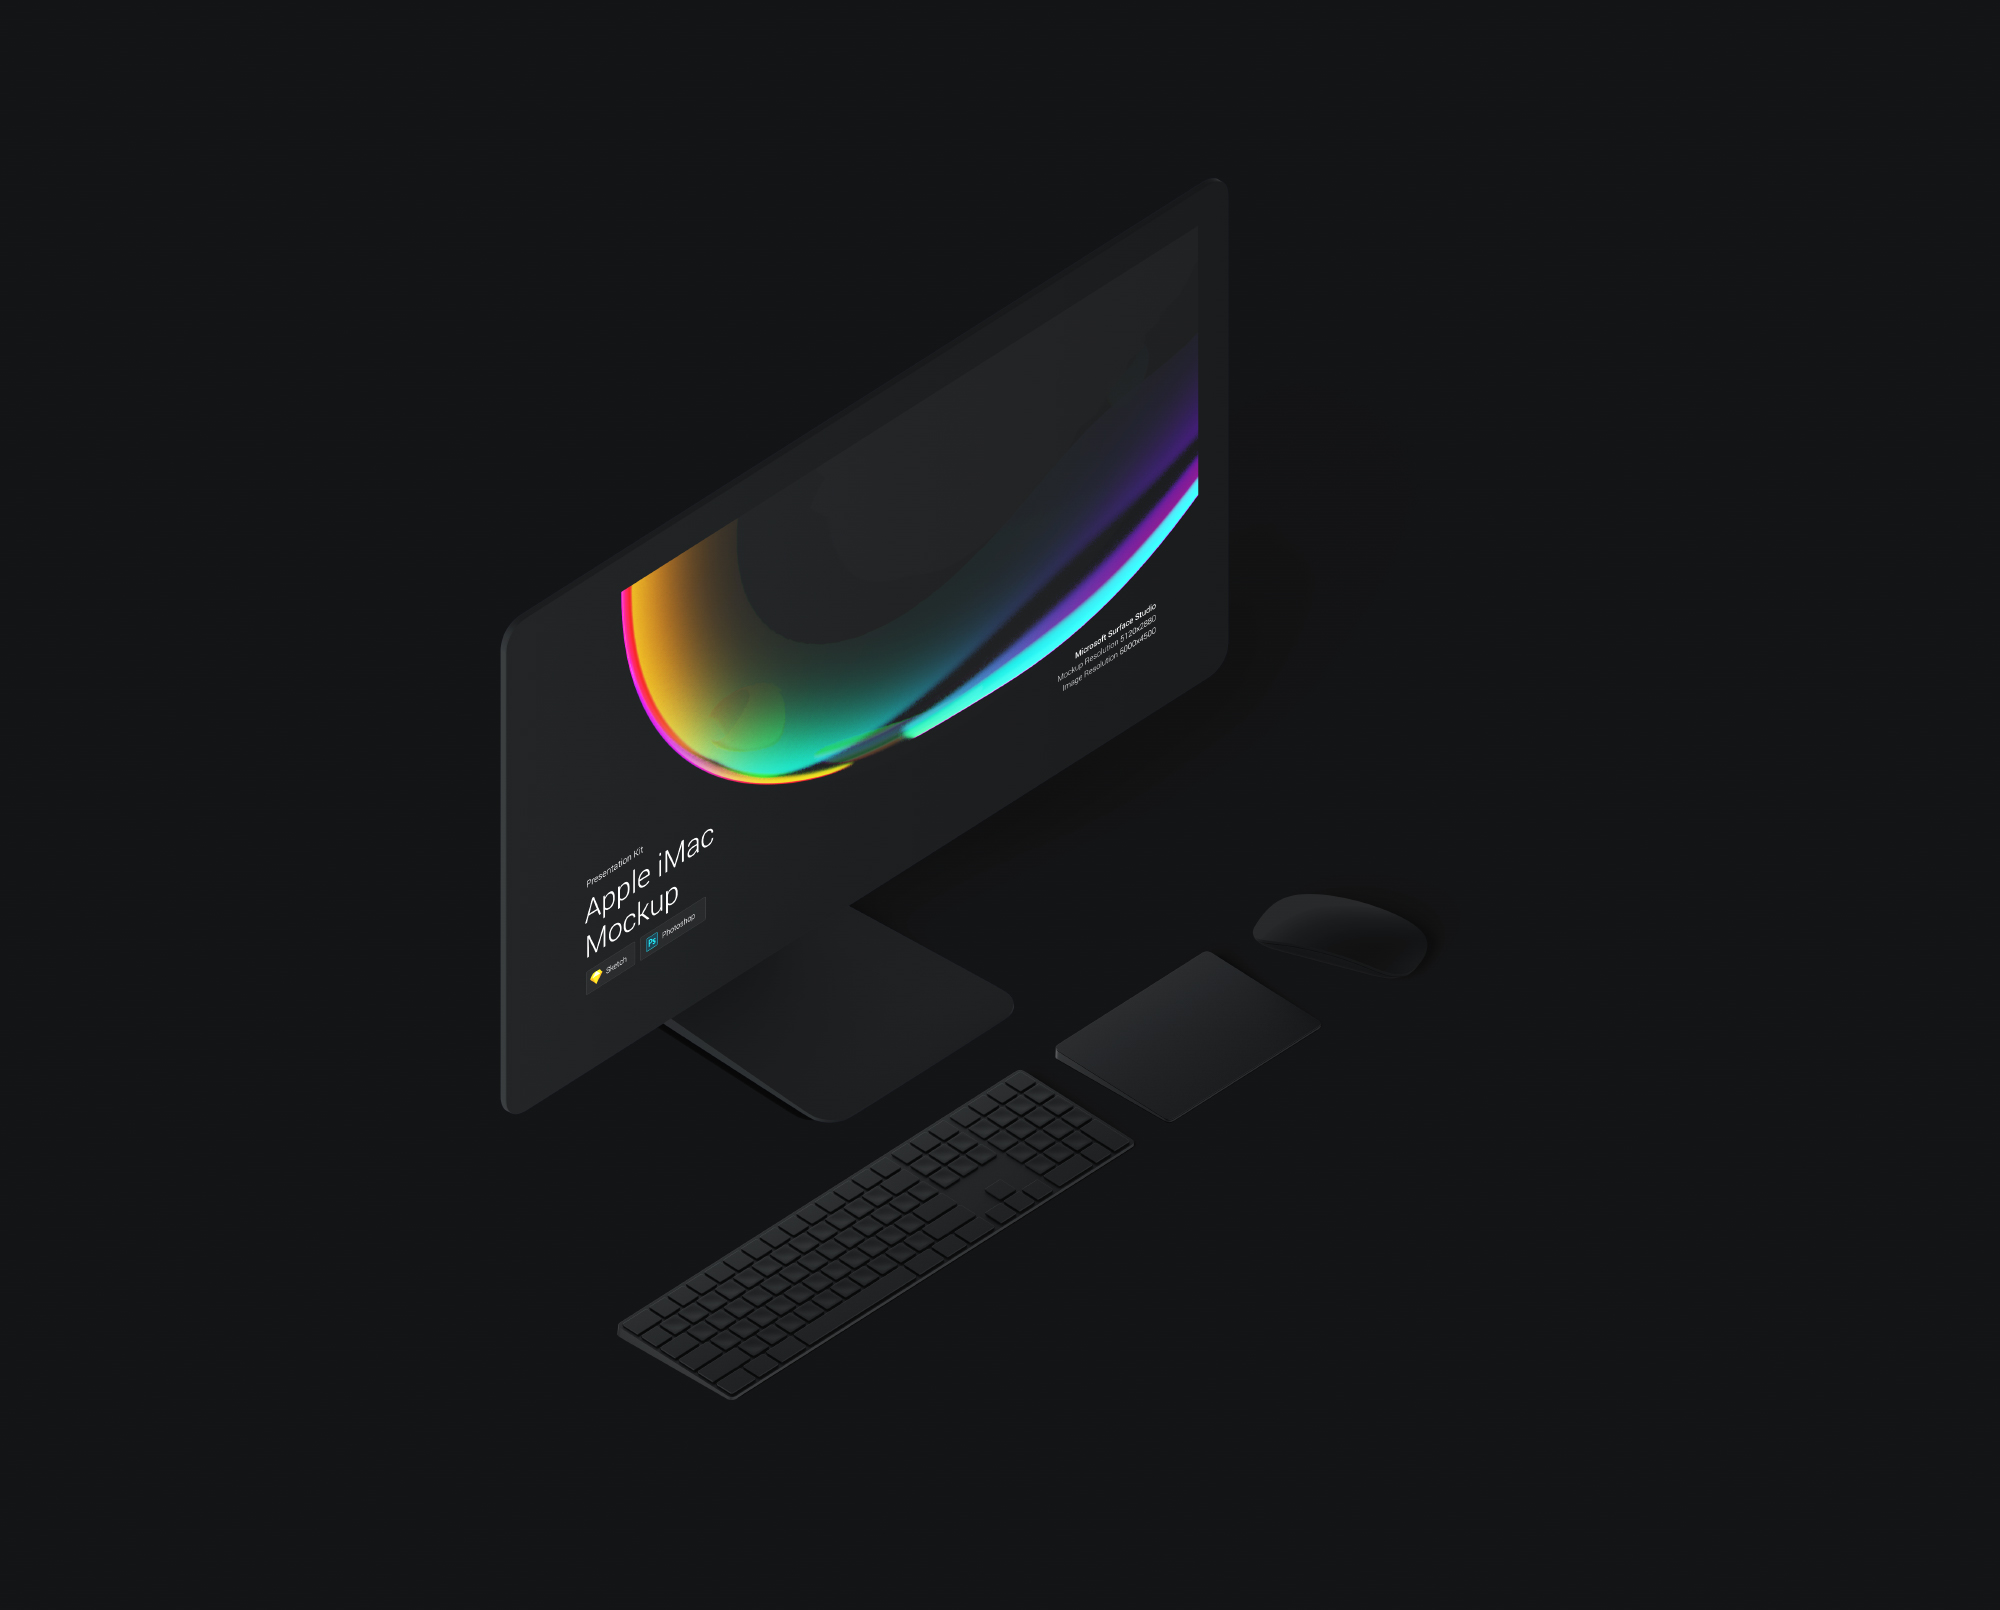 Download iMac Pro Mockup for Sketch and Photoshop